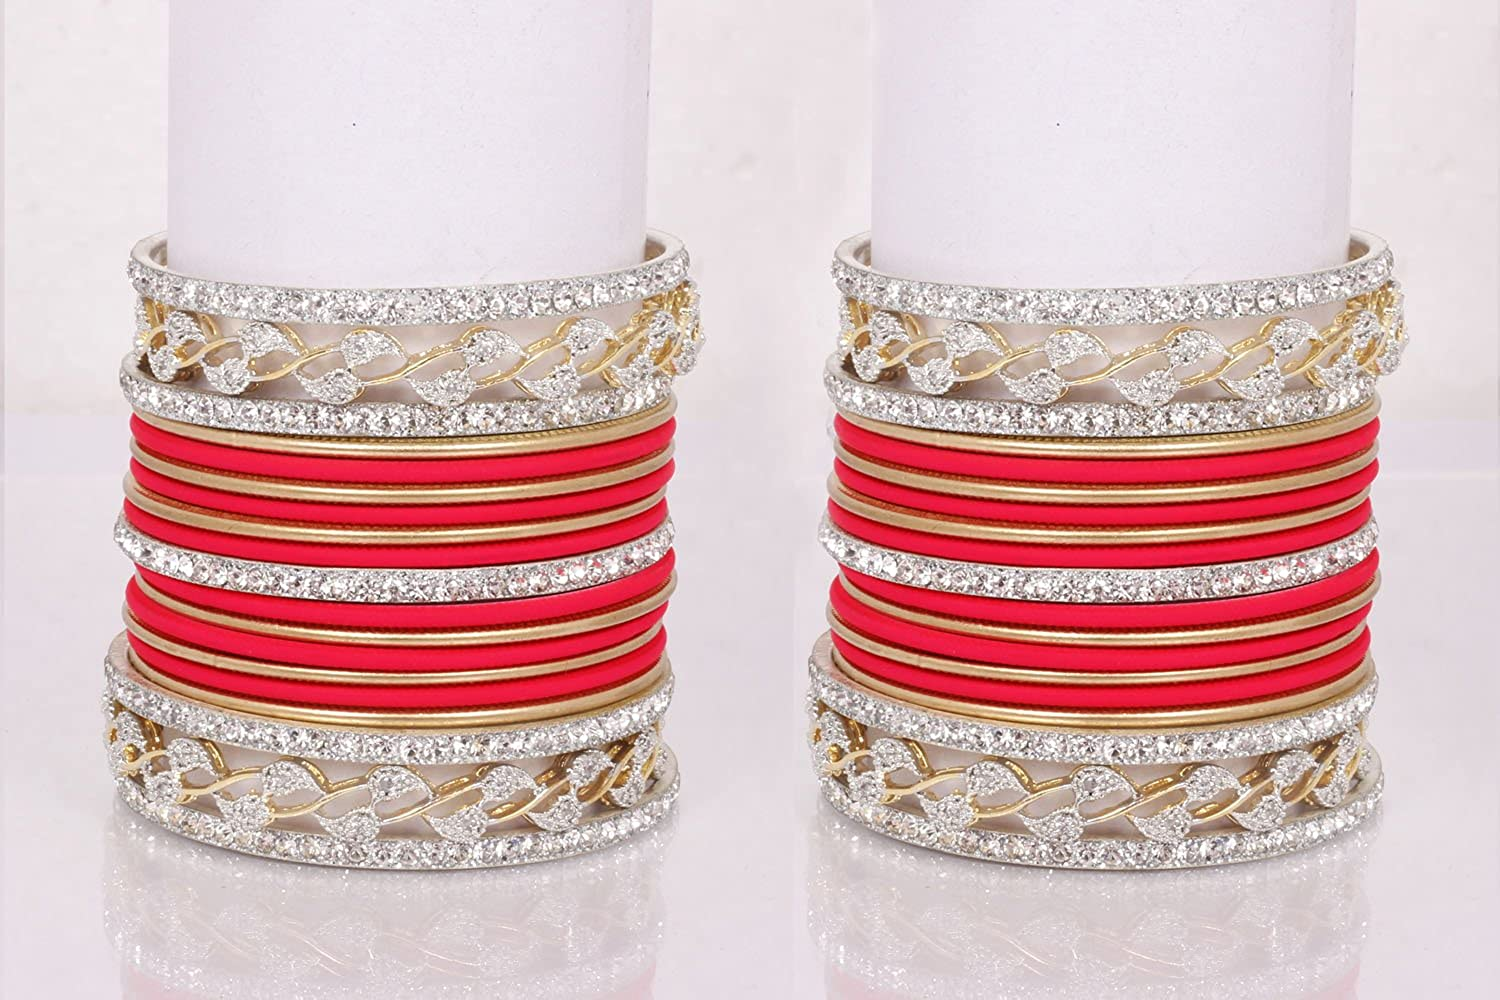 chauhan collection Pink-Golden Color Indian 38 PCS Bangles Arrangement Set American Daimond Bangles Party WEAR Jewelry